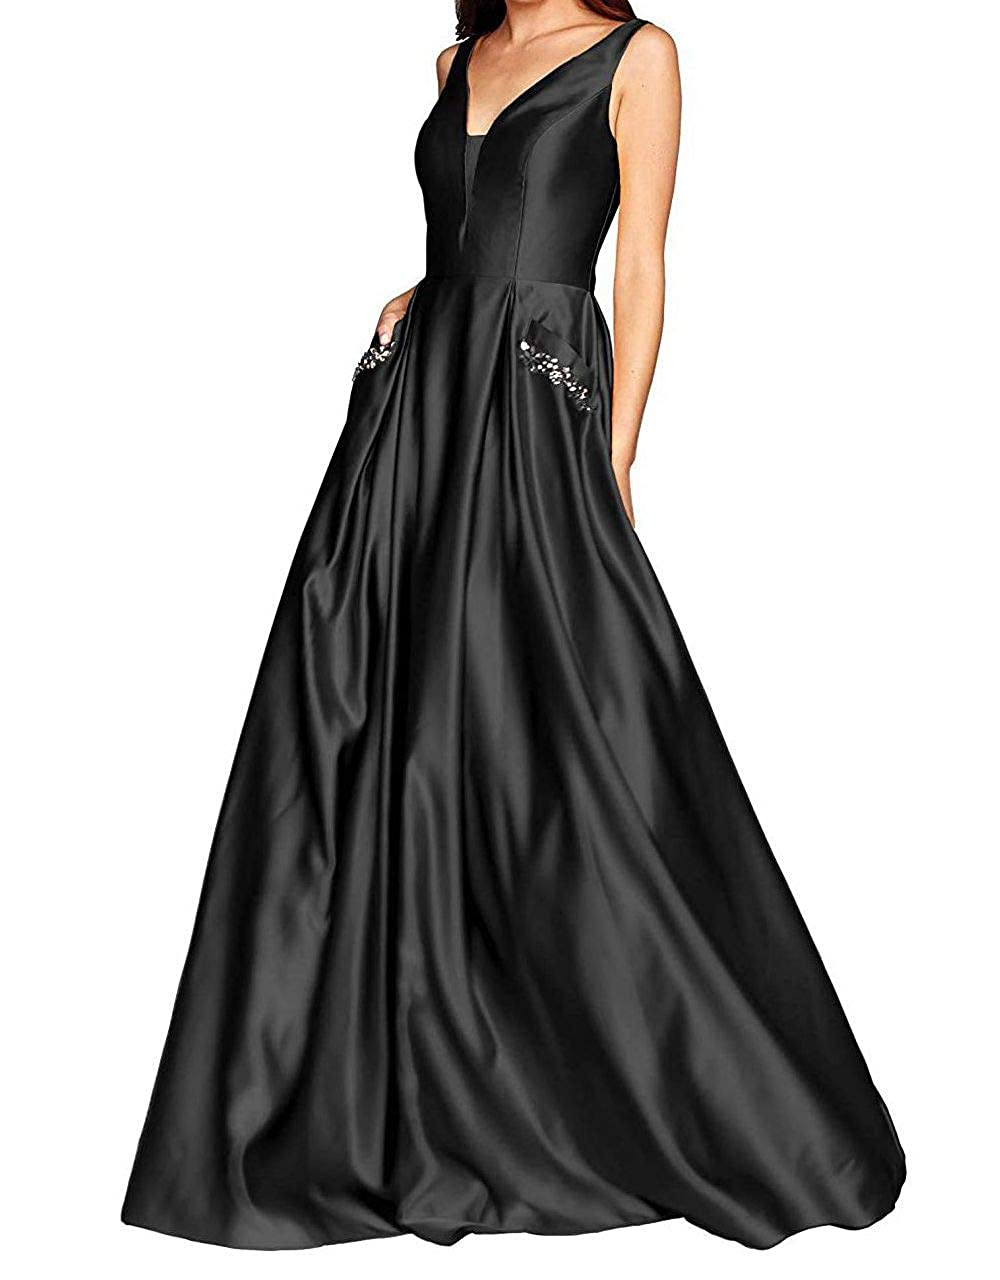 Black Yuki Isabelle Women's V Neck Prom Dresses A Line Beaded Satin Long Formal Evening Gown with Pockets